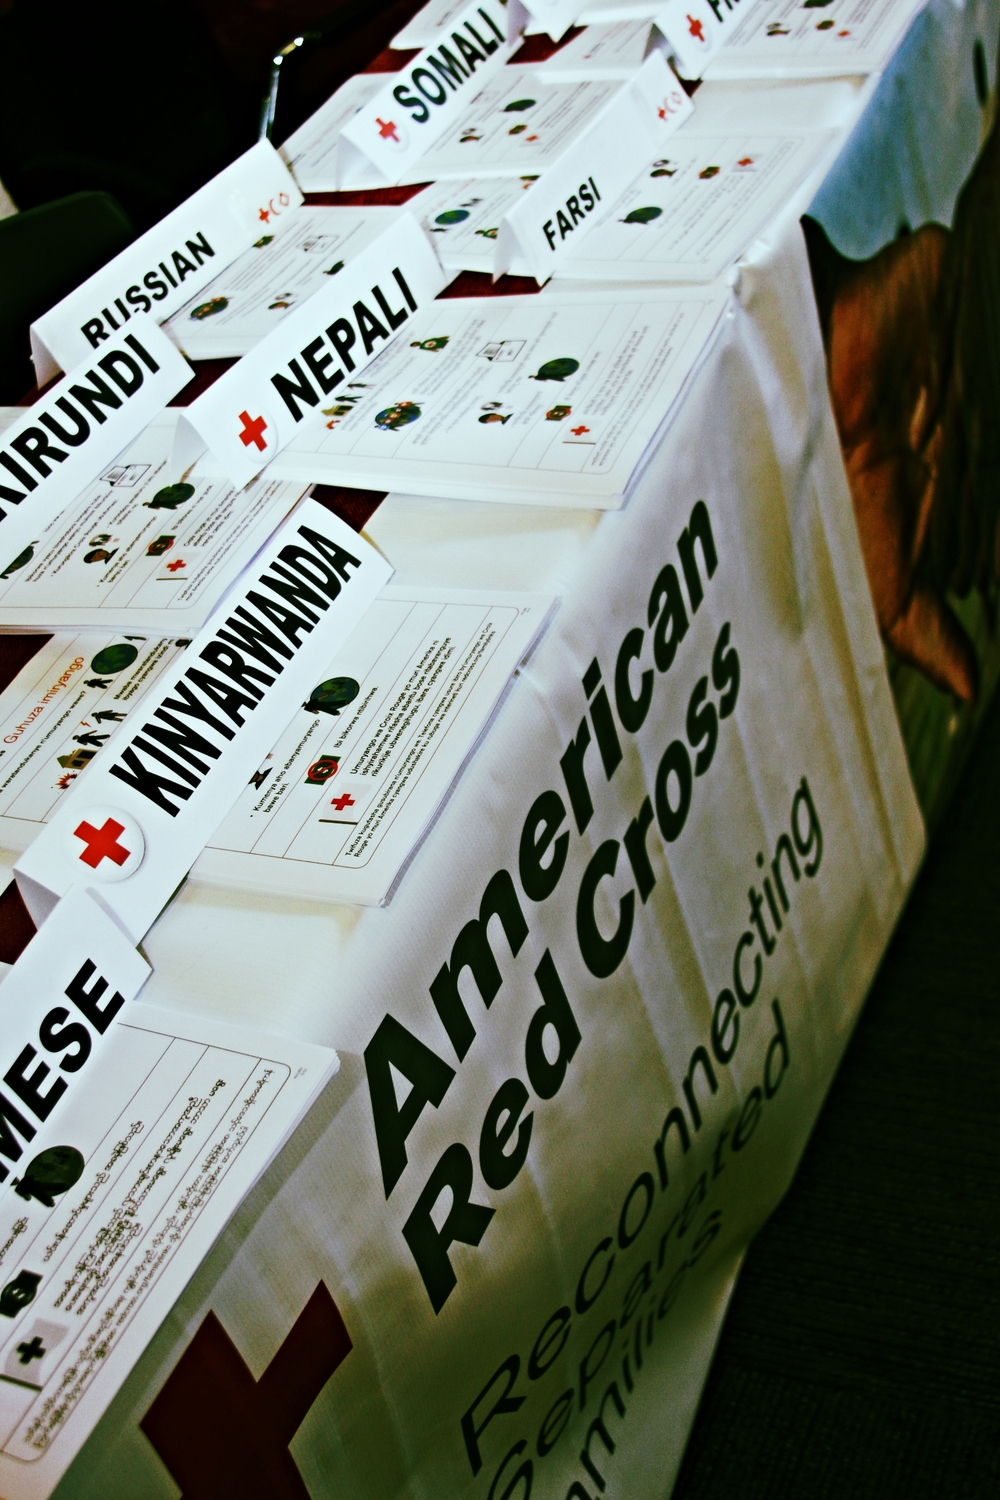 The Restoring Family Links resource table at World Refugee Day offered materials in many languages to help explain the services available to refugees through the American Red Cross.